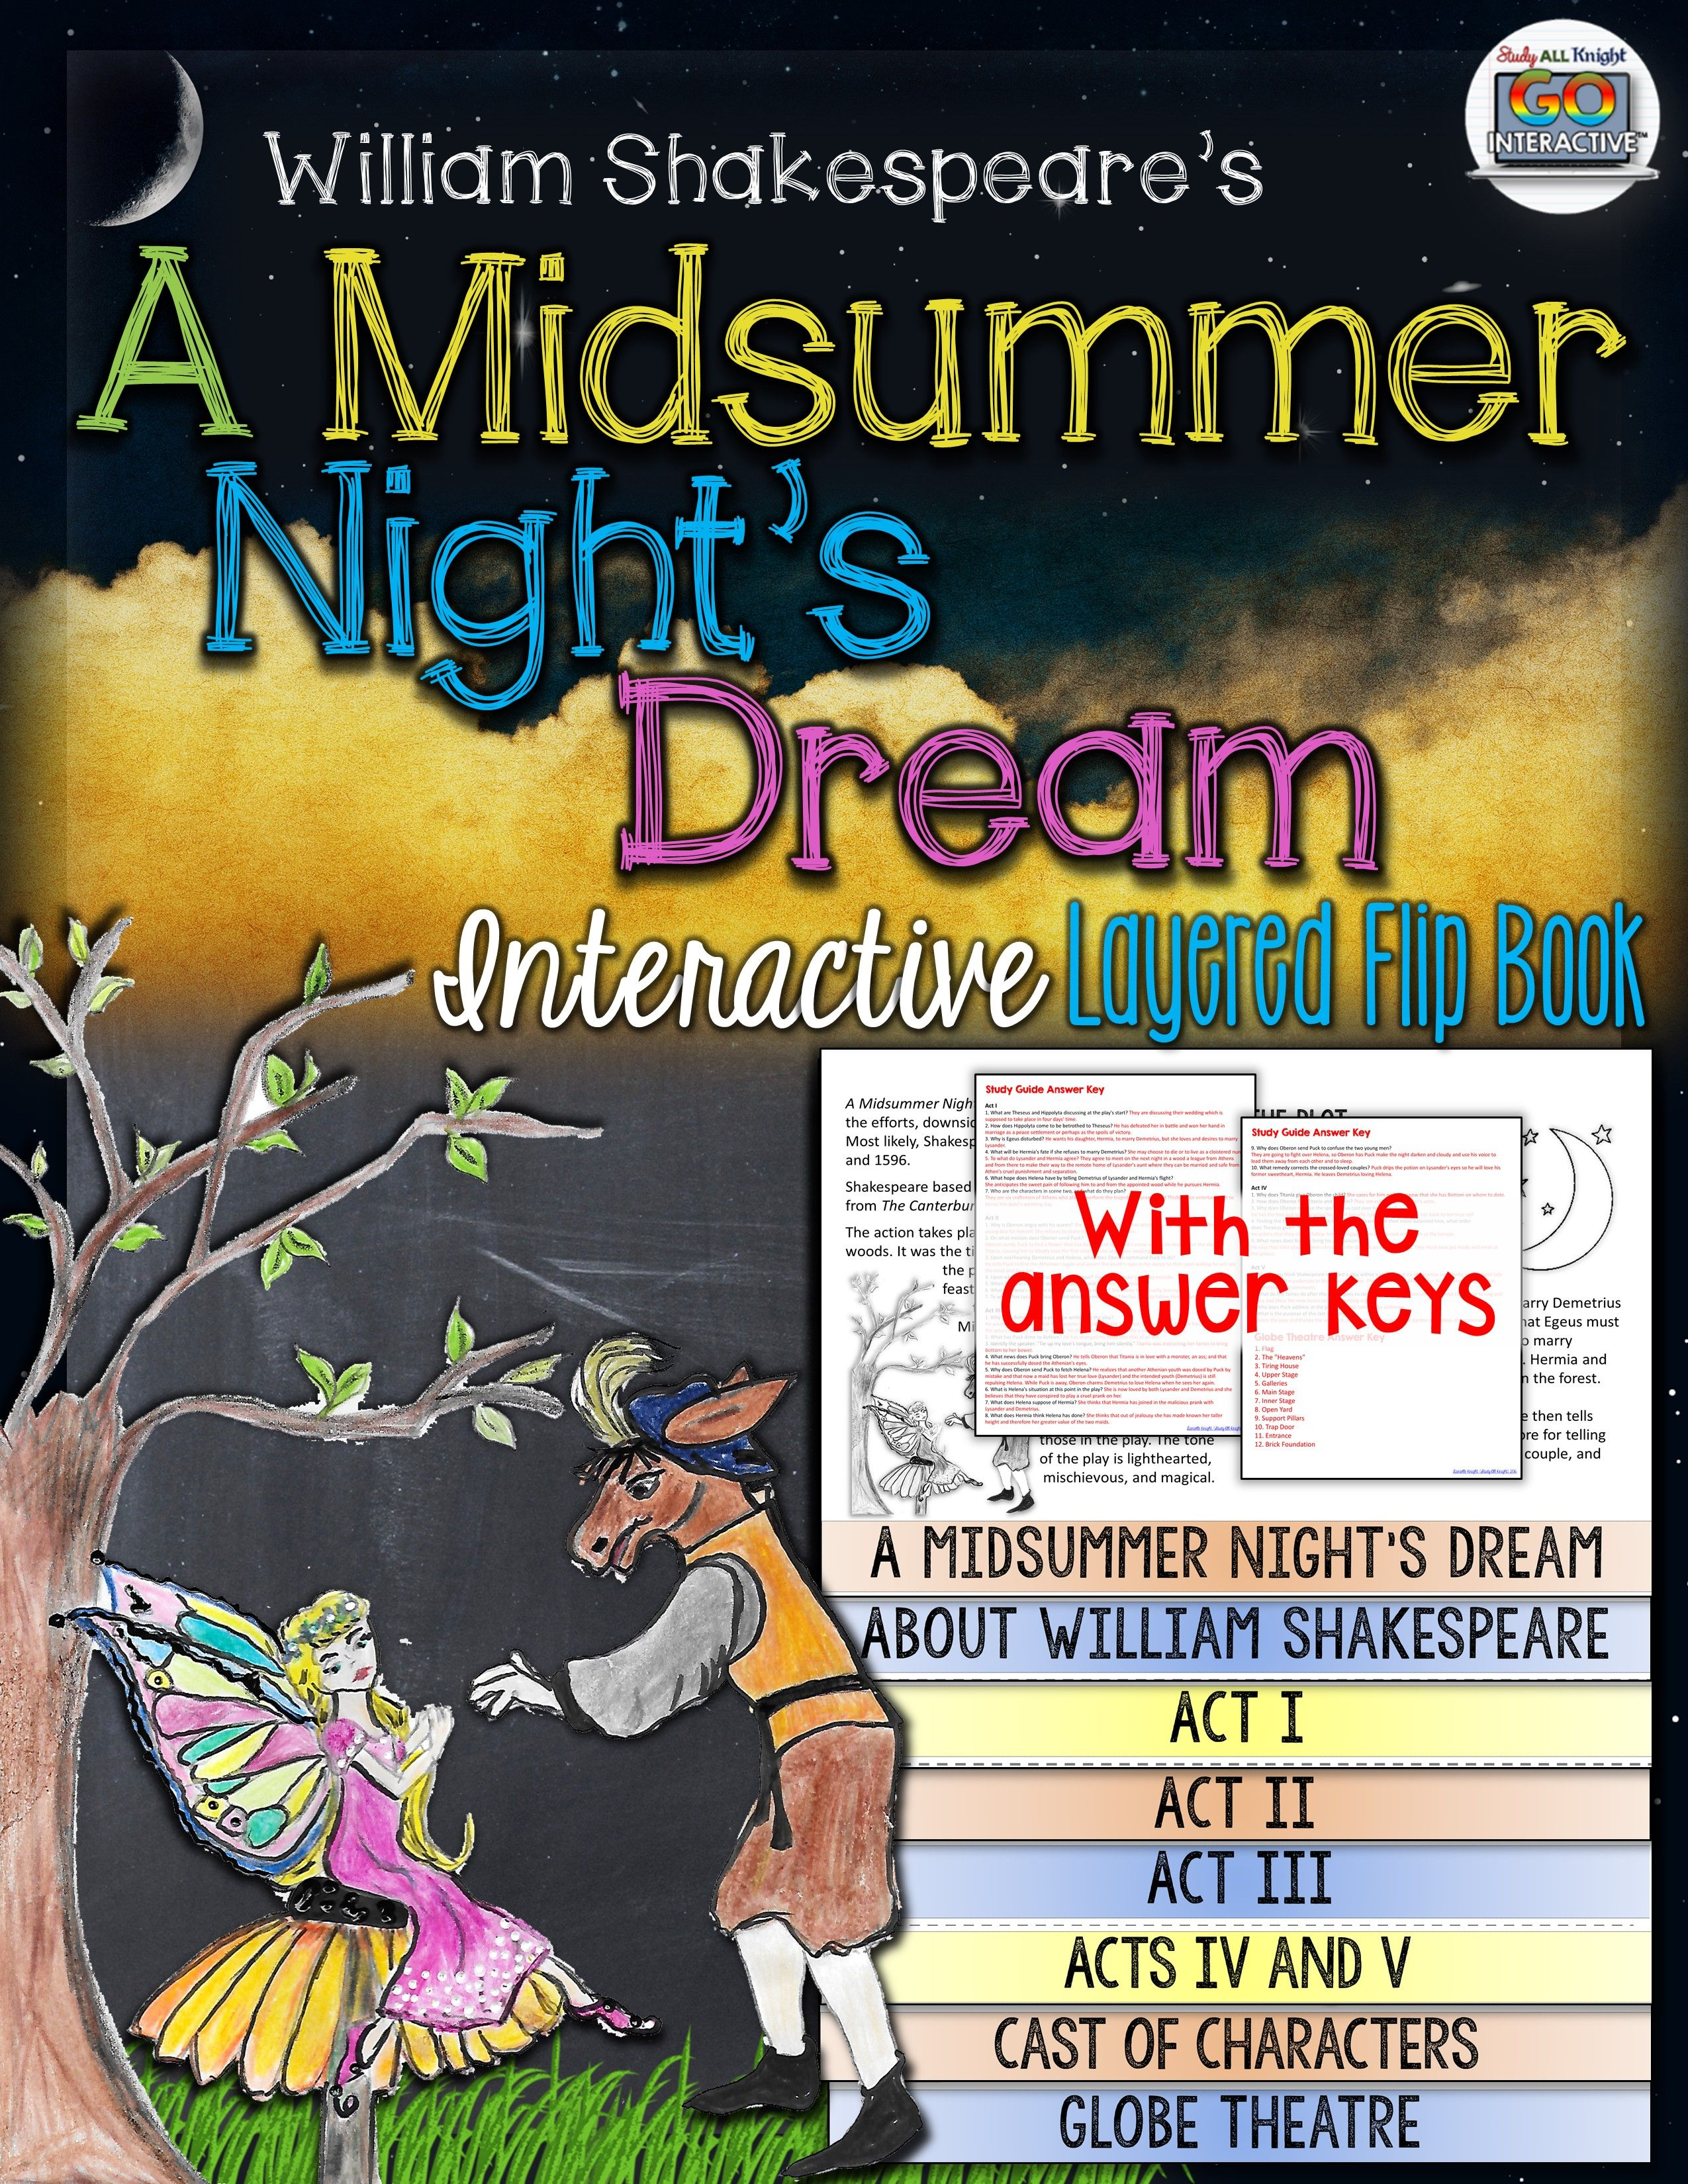 expository essay for a midsummer nights dream Textual evidence analysis expository  this a midsummer night's dream expository an expository essay tutorial a midsummer night's dream.